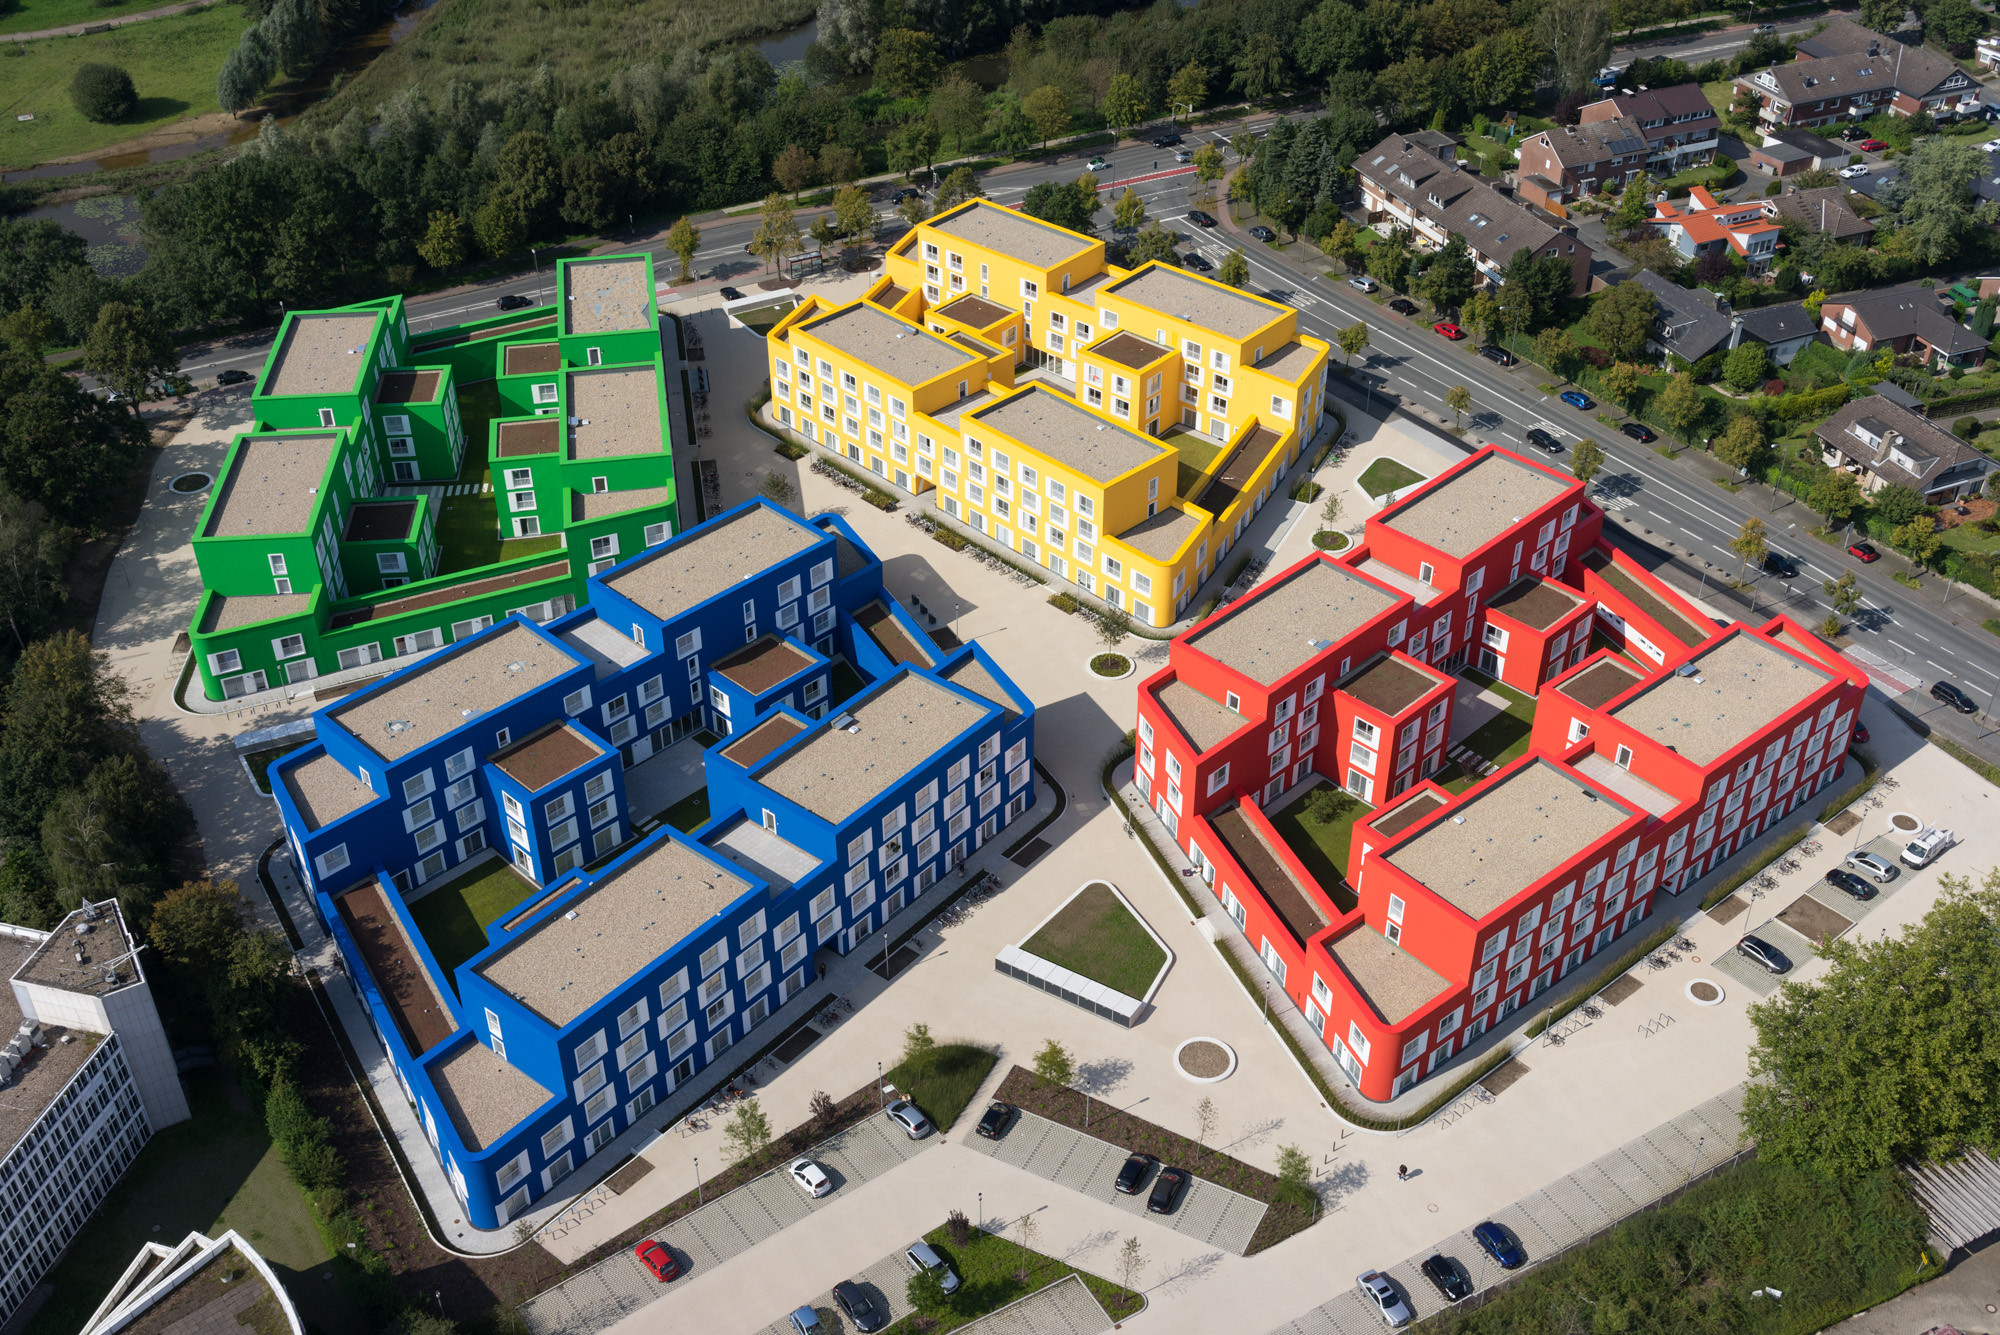 Boeselburg Council and Student Housing / Kresings GmbH, © HG Esch